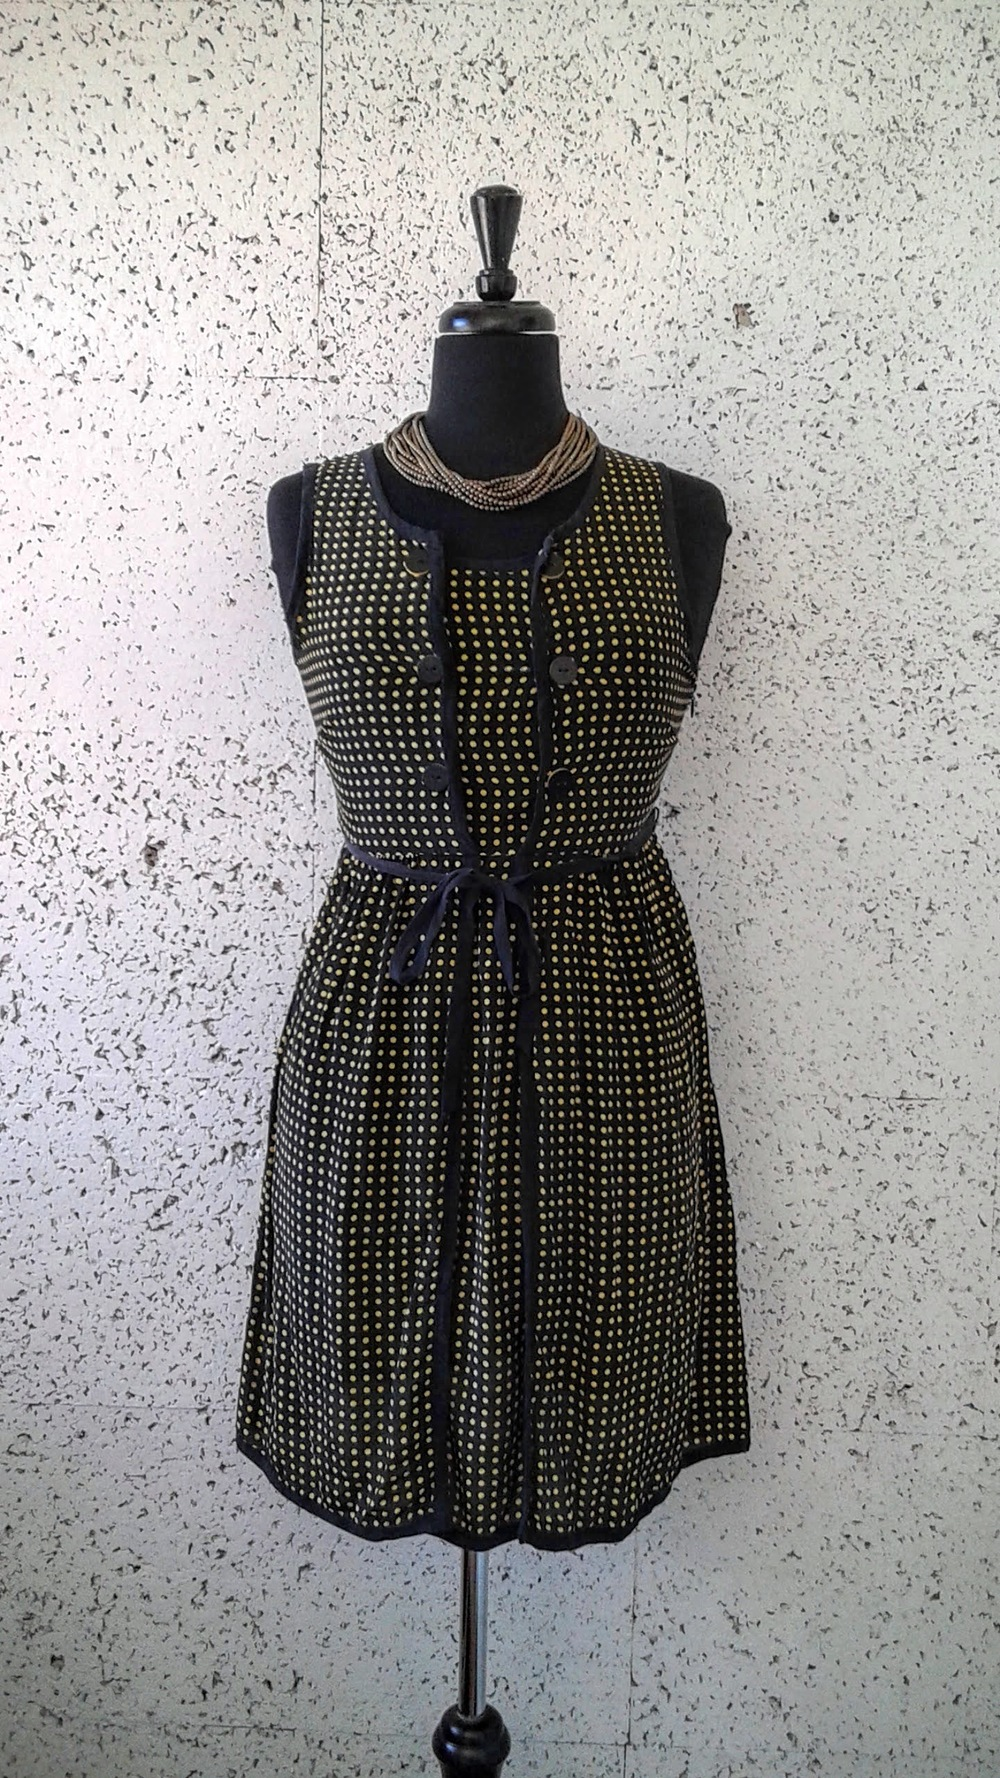 Mac and Jac dress; Size S, $30